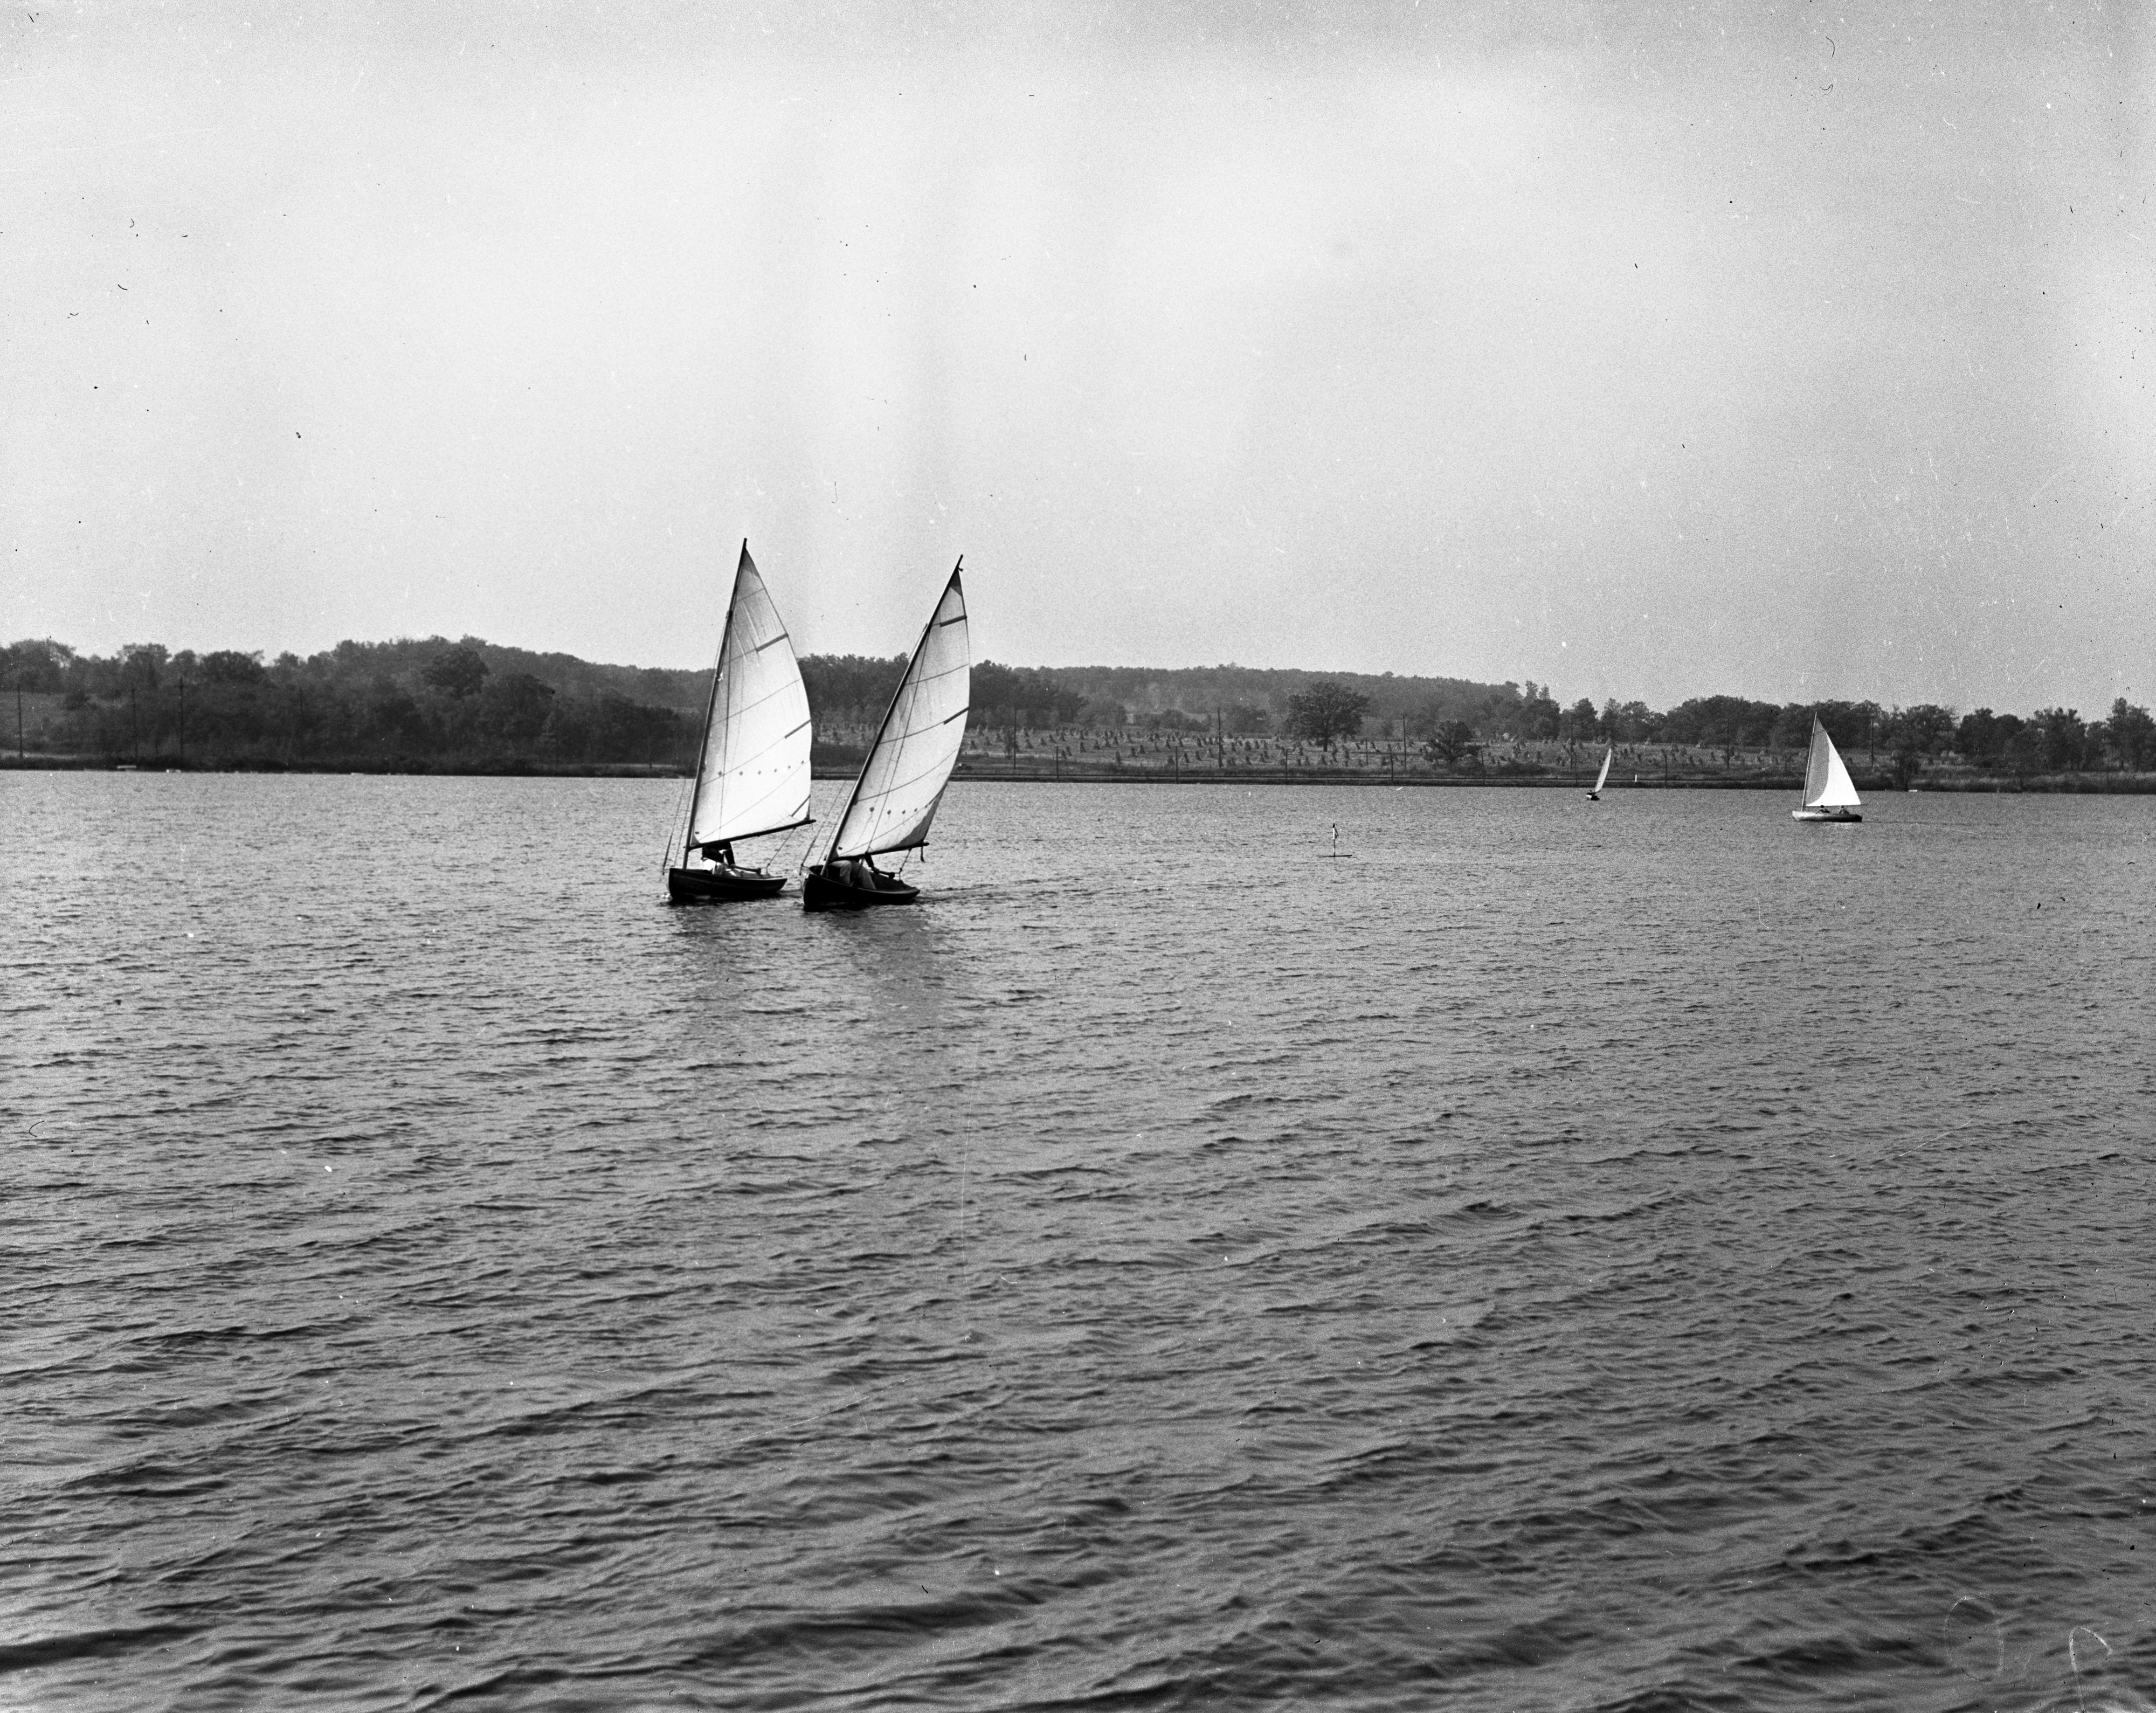 Barton Boat Club Catboat Race On Barton Pond, 1937 image